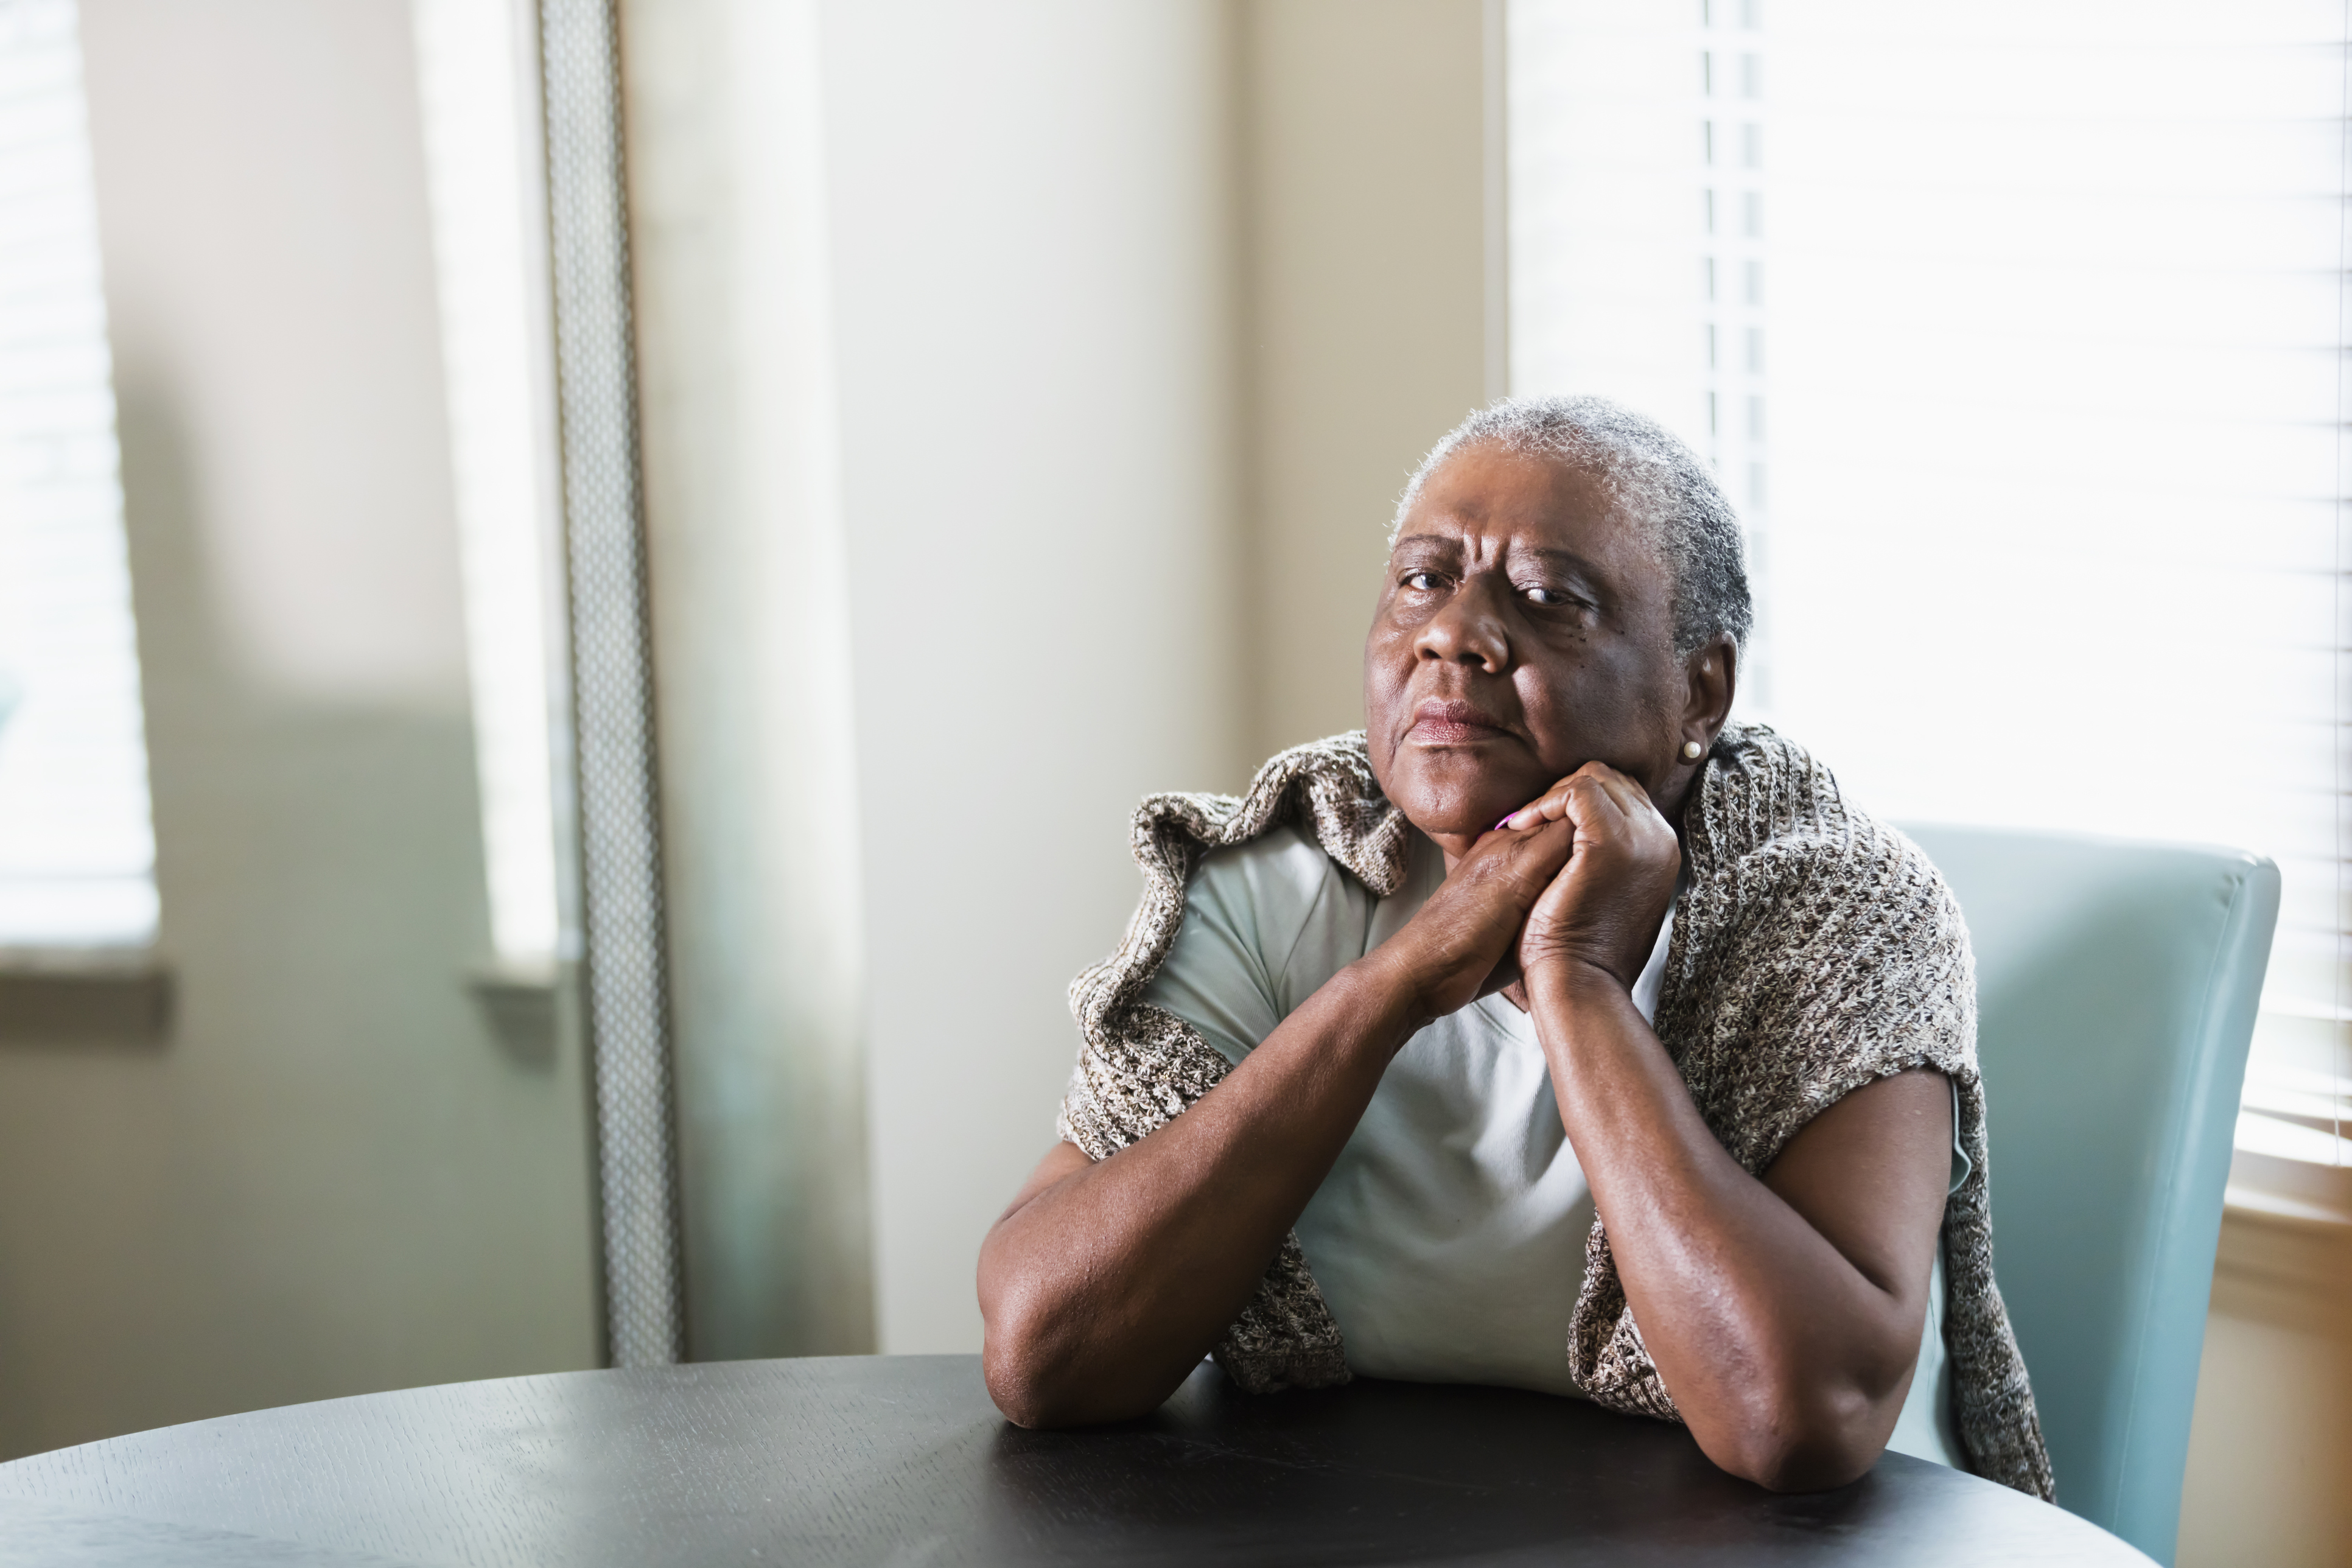 A lonely senior African-American woman in her 70s sitting at home at a table by a window. She is looking at the camera with a serious expression, elbows on the table and hands clasped.